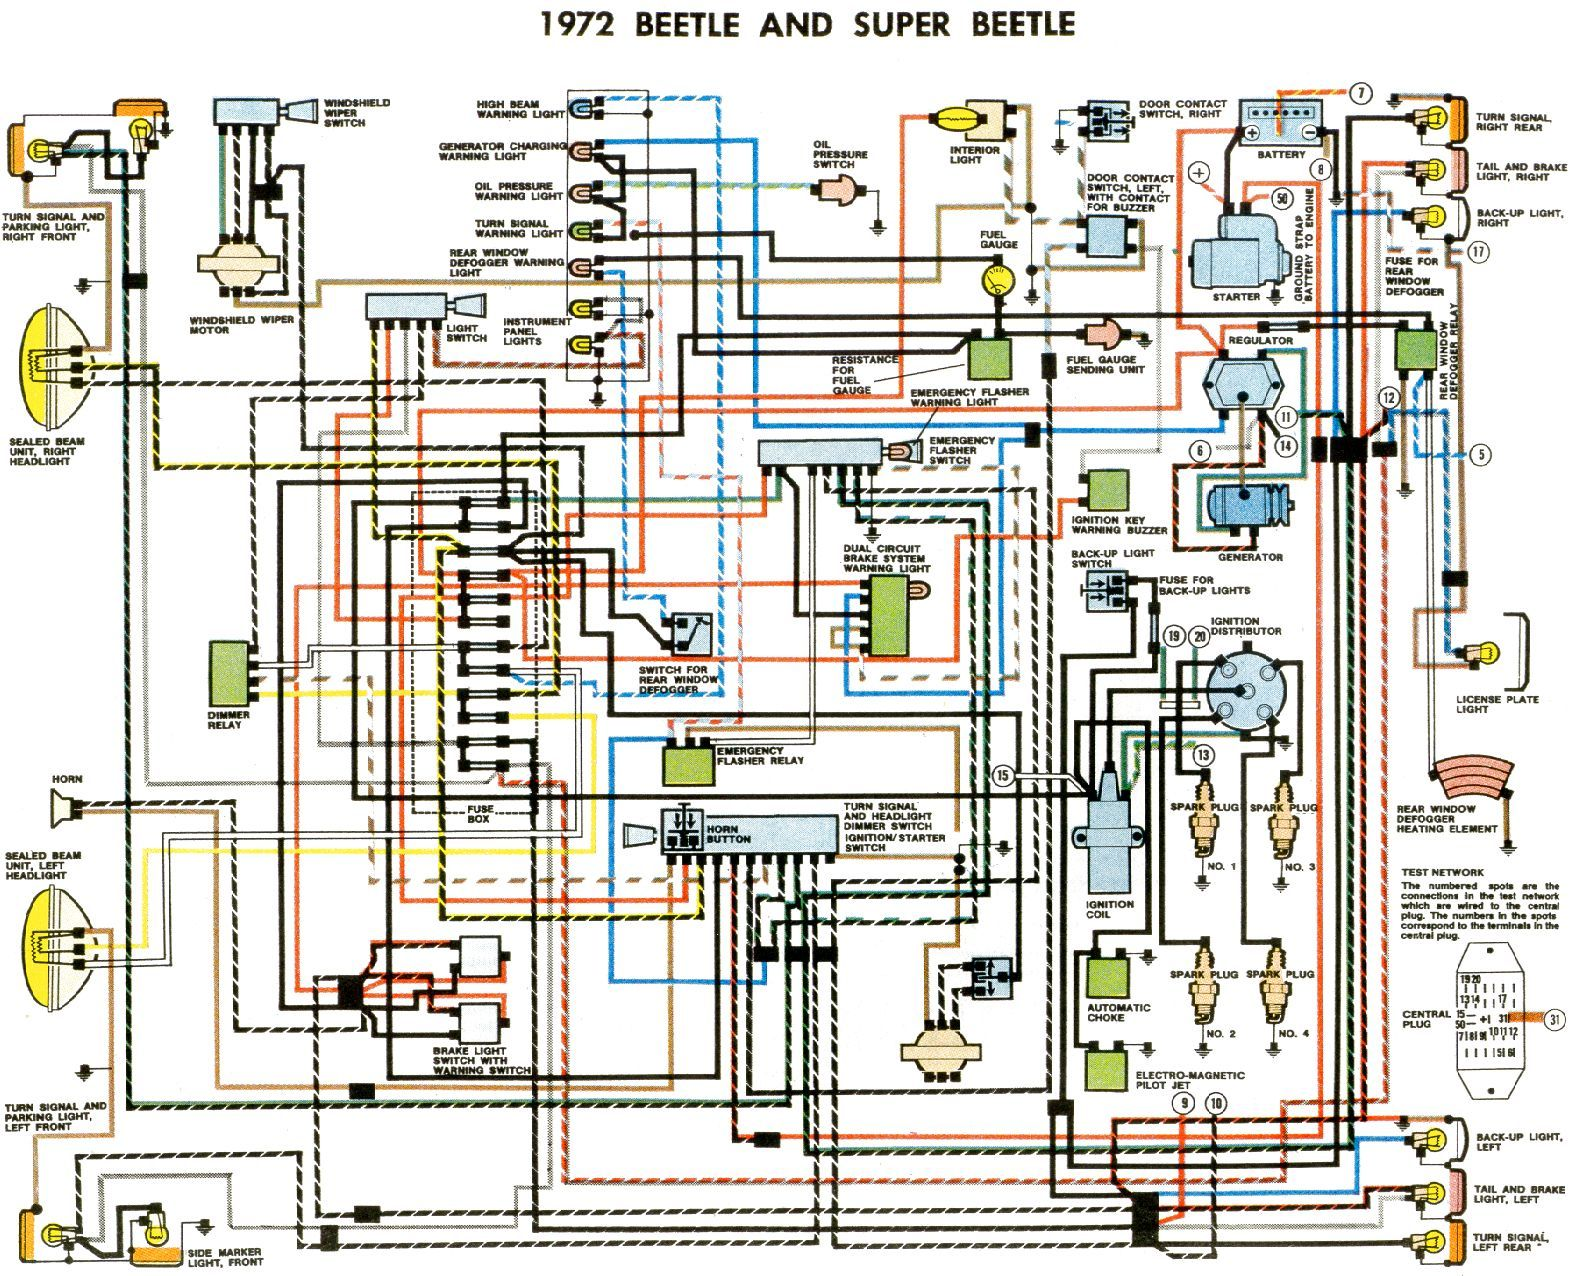 48817ac6ffbdd3287fe627e7db60a9d1 72 wiring diagram jpg; 1582 x 1276 (@46%) vw pinterest 72 vw bus wiring diagram at alyssarenee.co